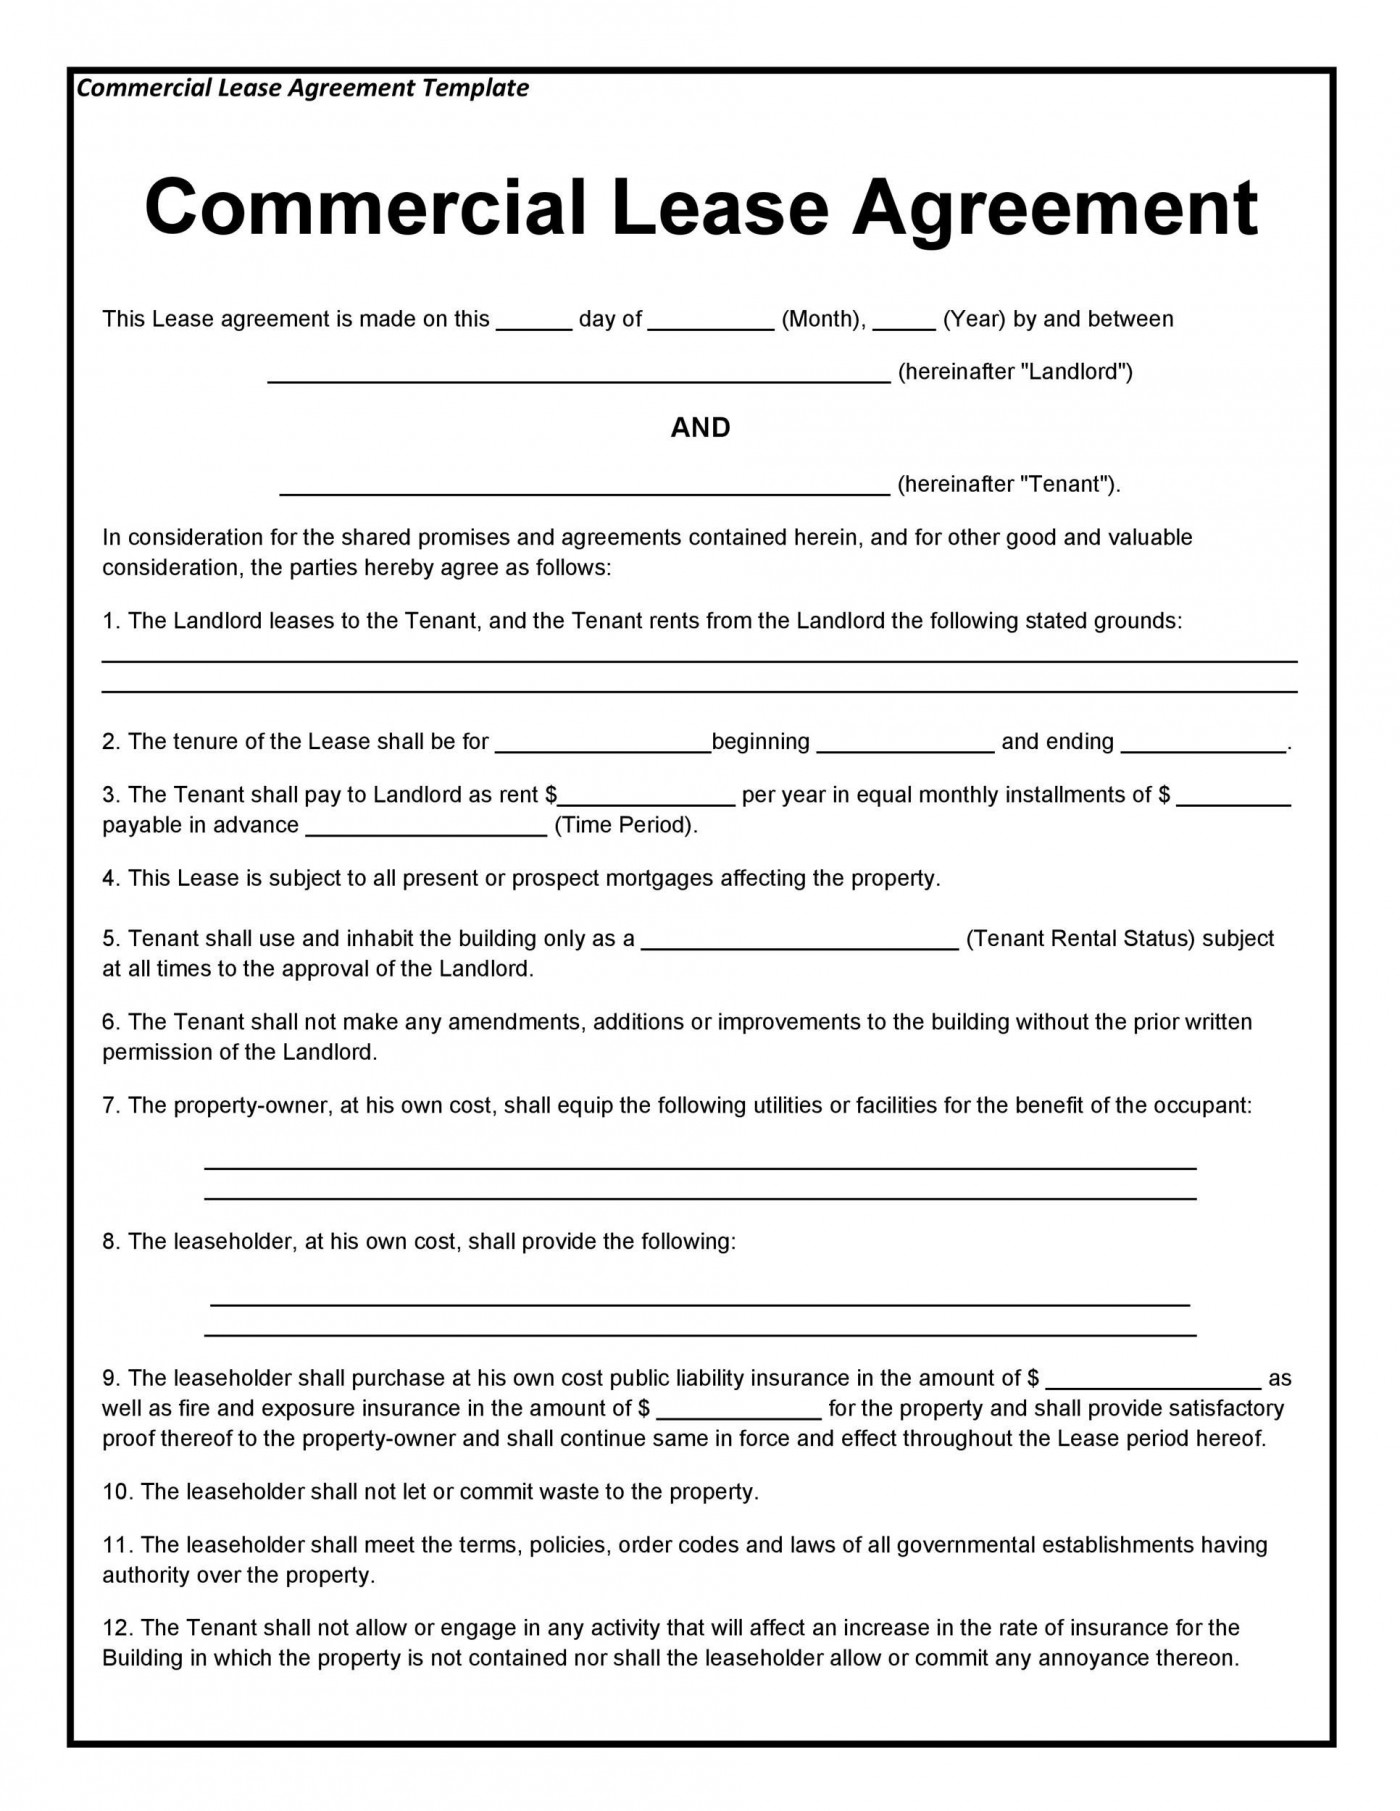 004 Best Template For Lease Agreement Free Photo  Printable Room Rental Commercial Uk Florida1400